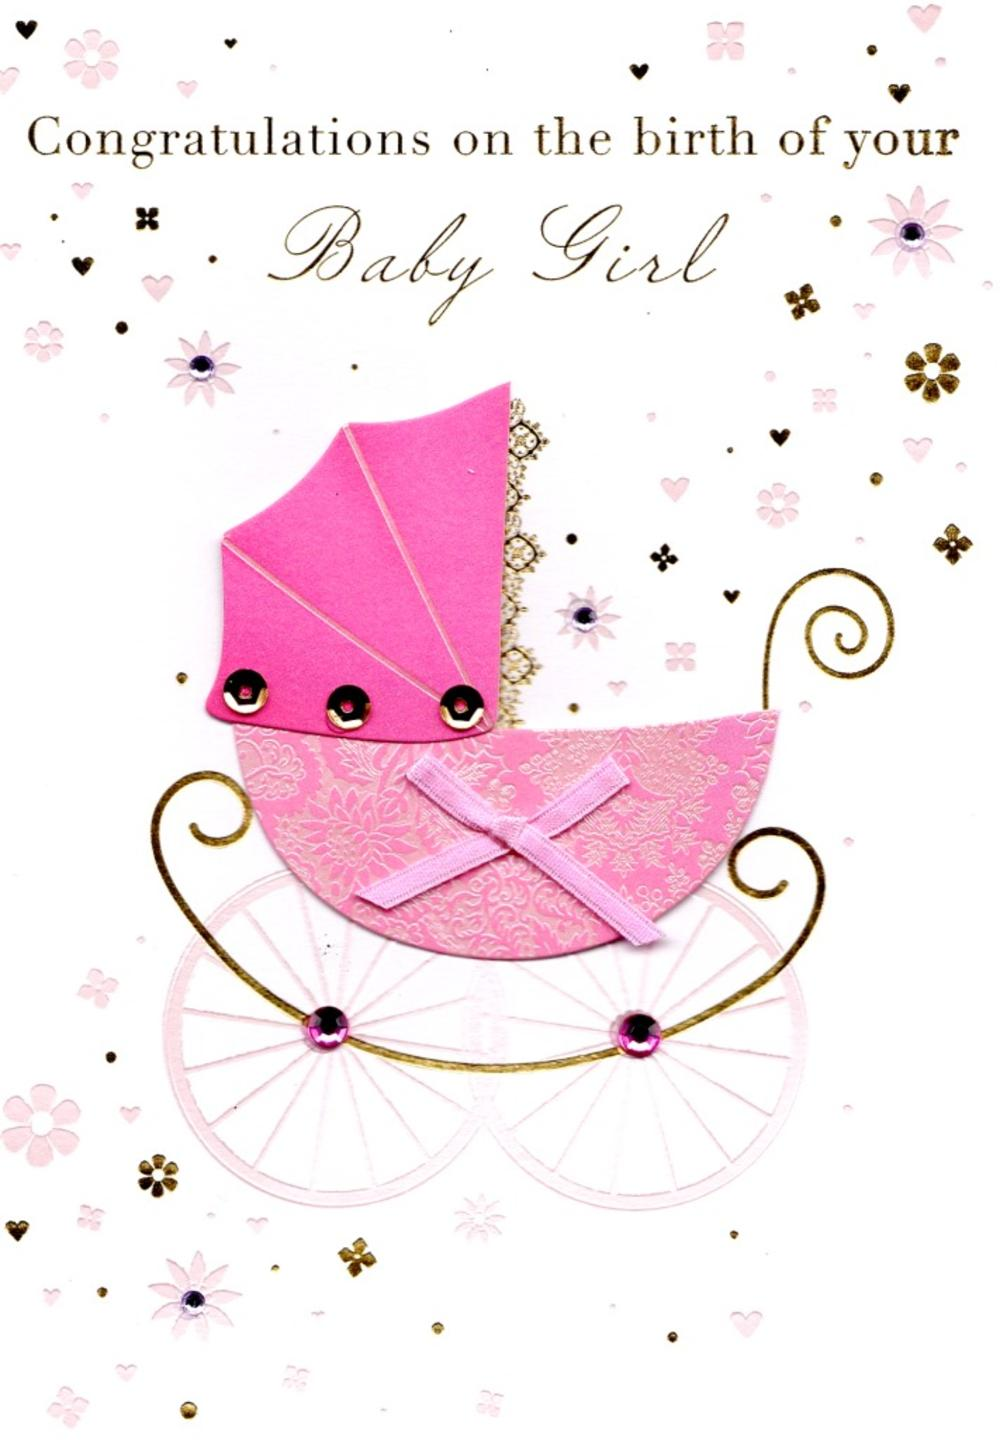 Congratulations birth new baby girl greeting card cards love kates congratulations birth new baby girl greeting card kristyandbryce Images